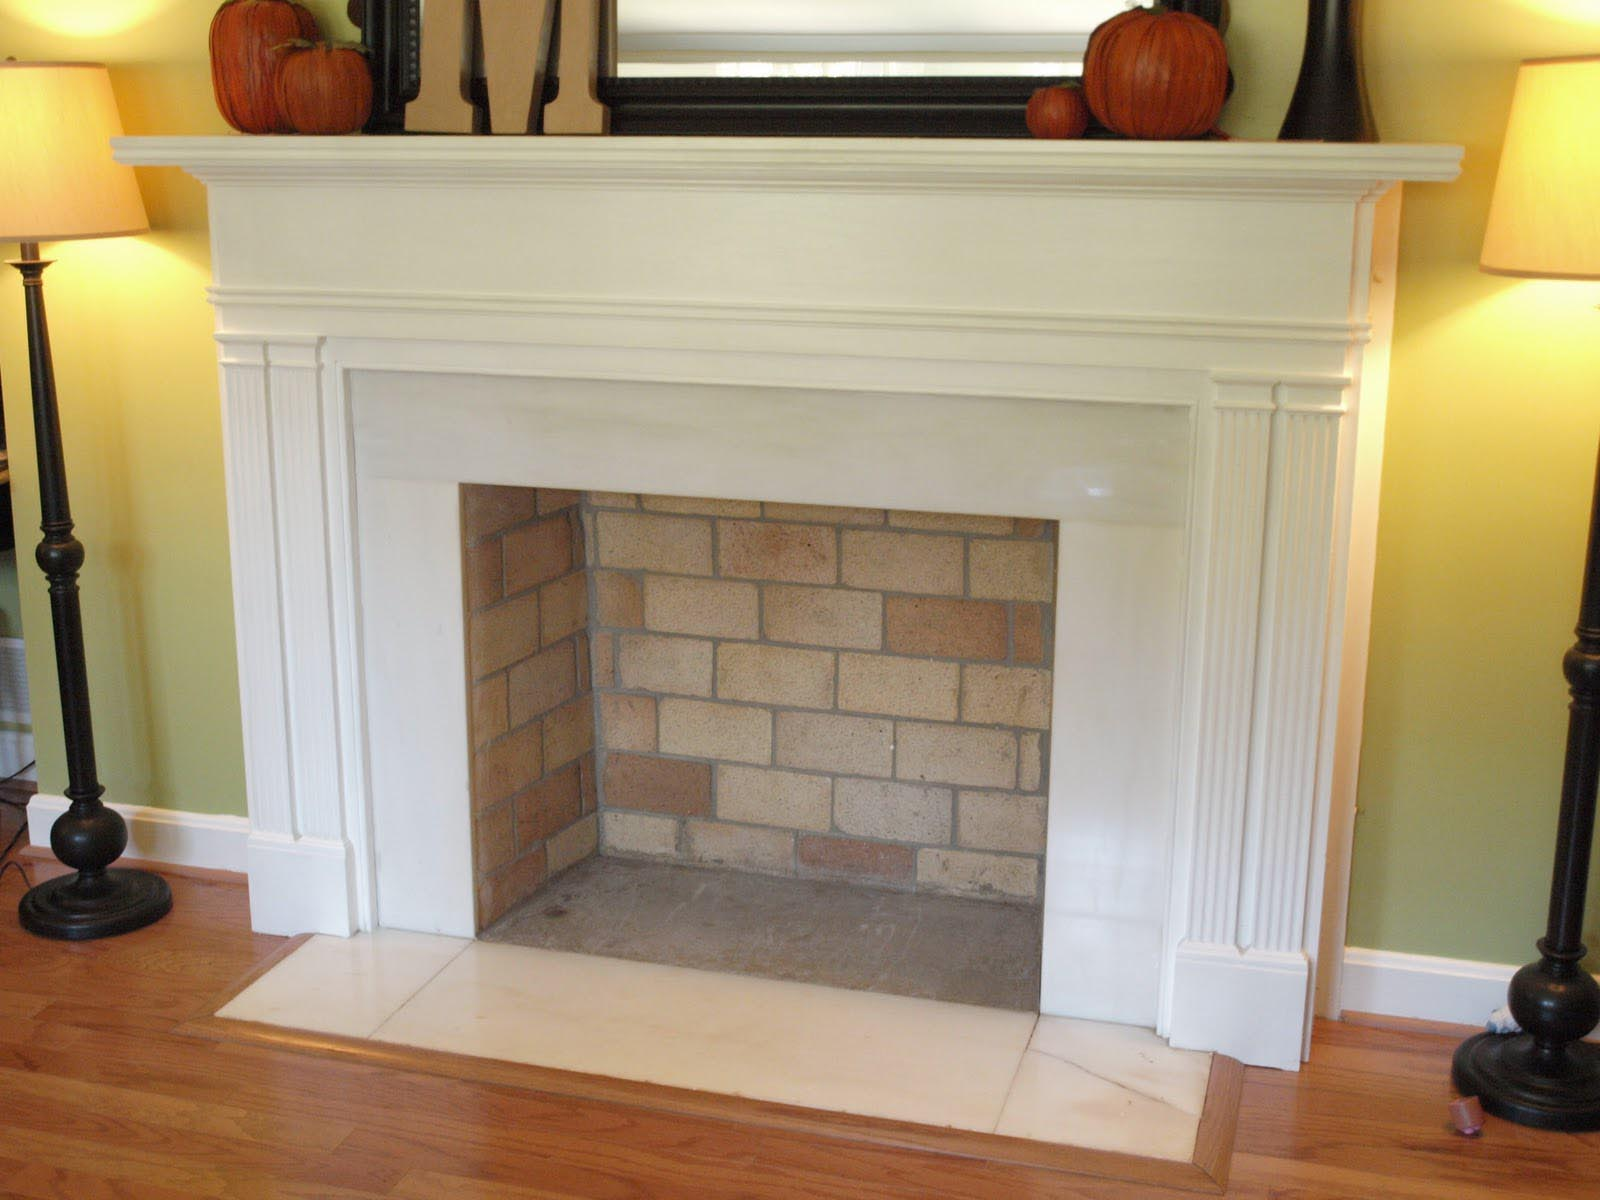 ... How To Make A Fake Fireplace Out Of A Bookshelf ...